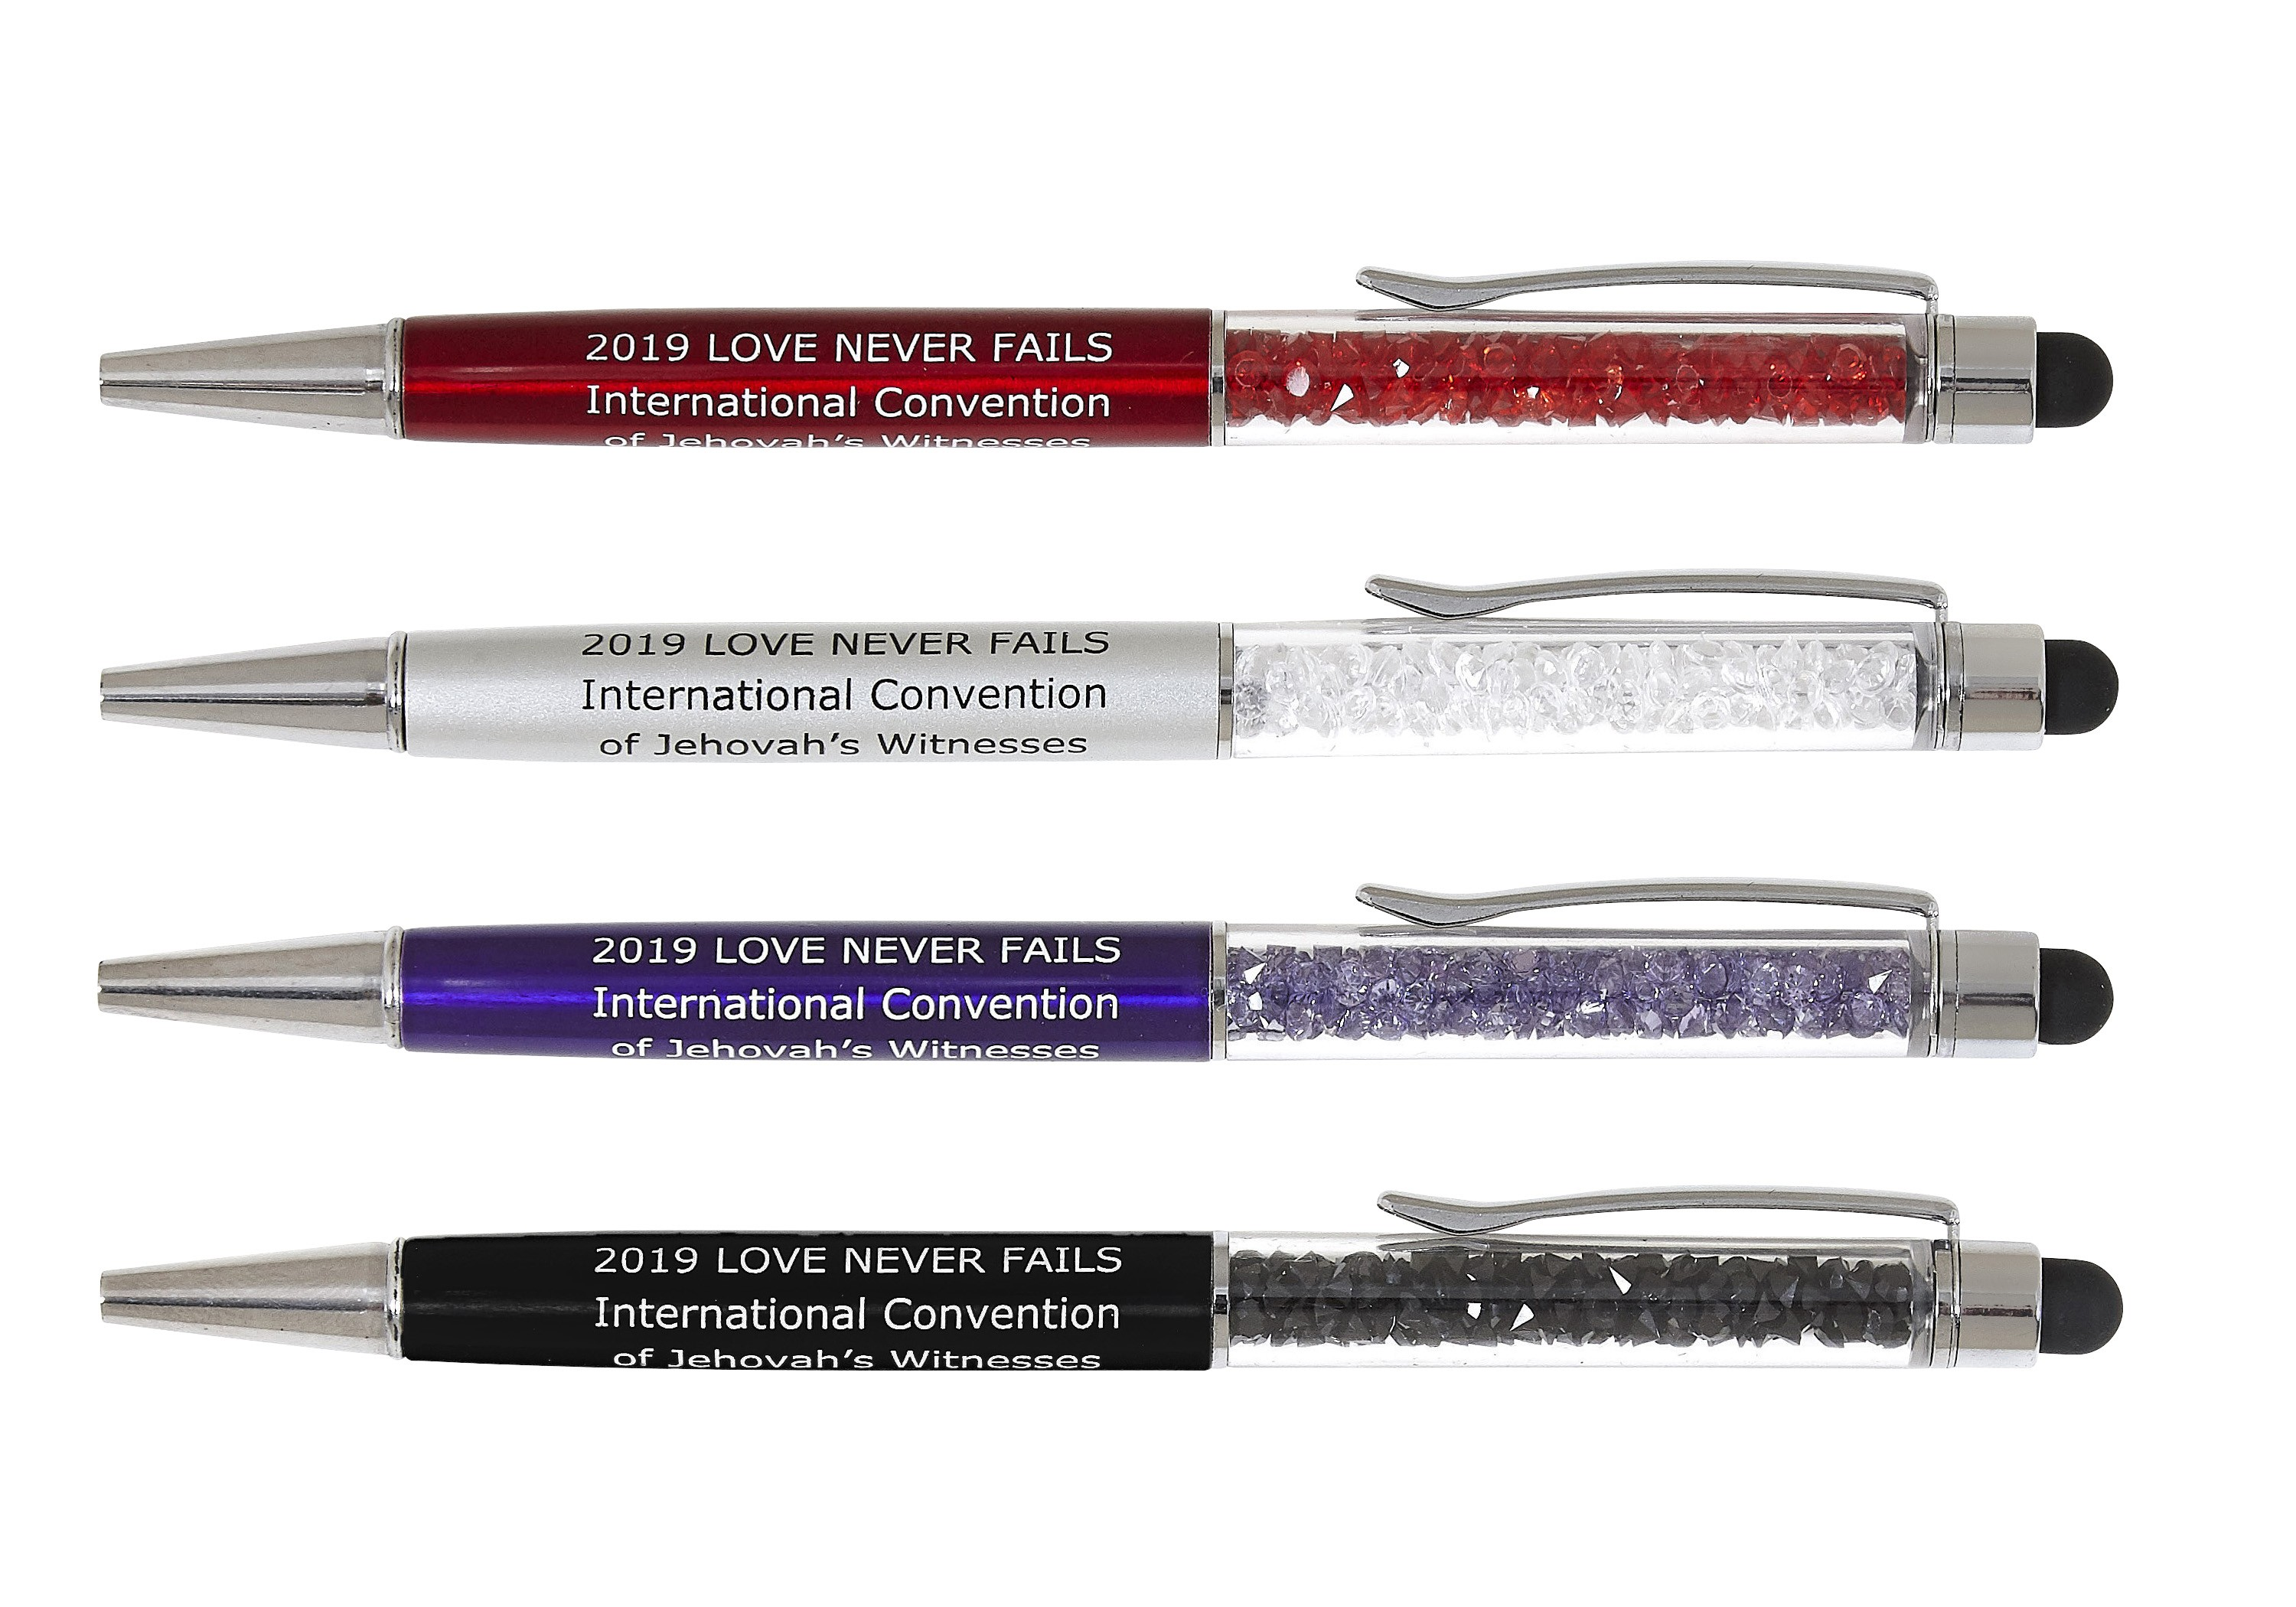 International Convention Pen (NO DISCOUNT ON THIS ITEM)